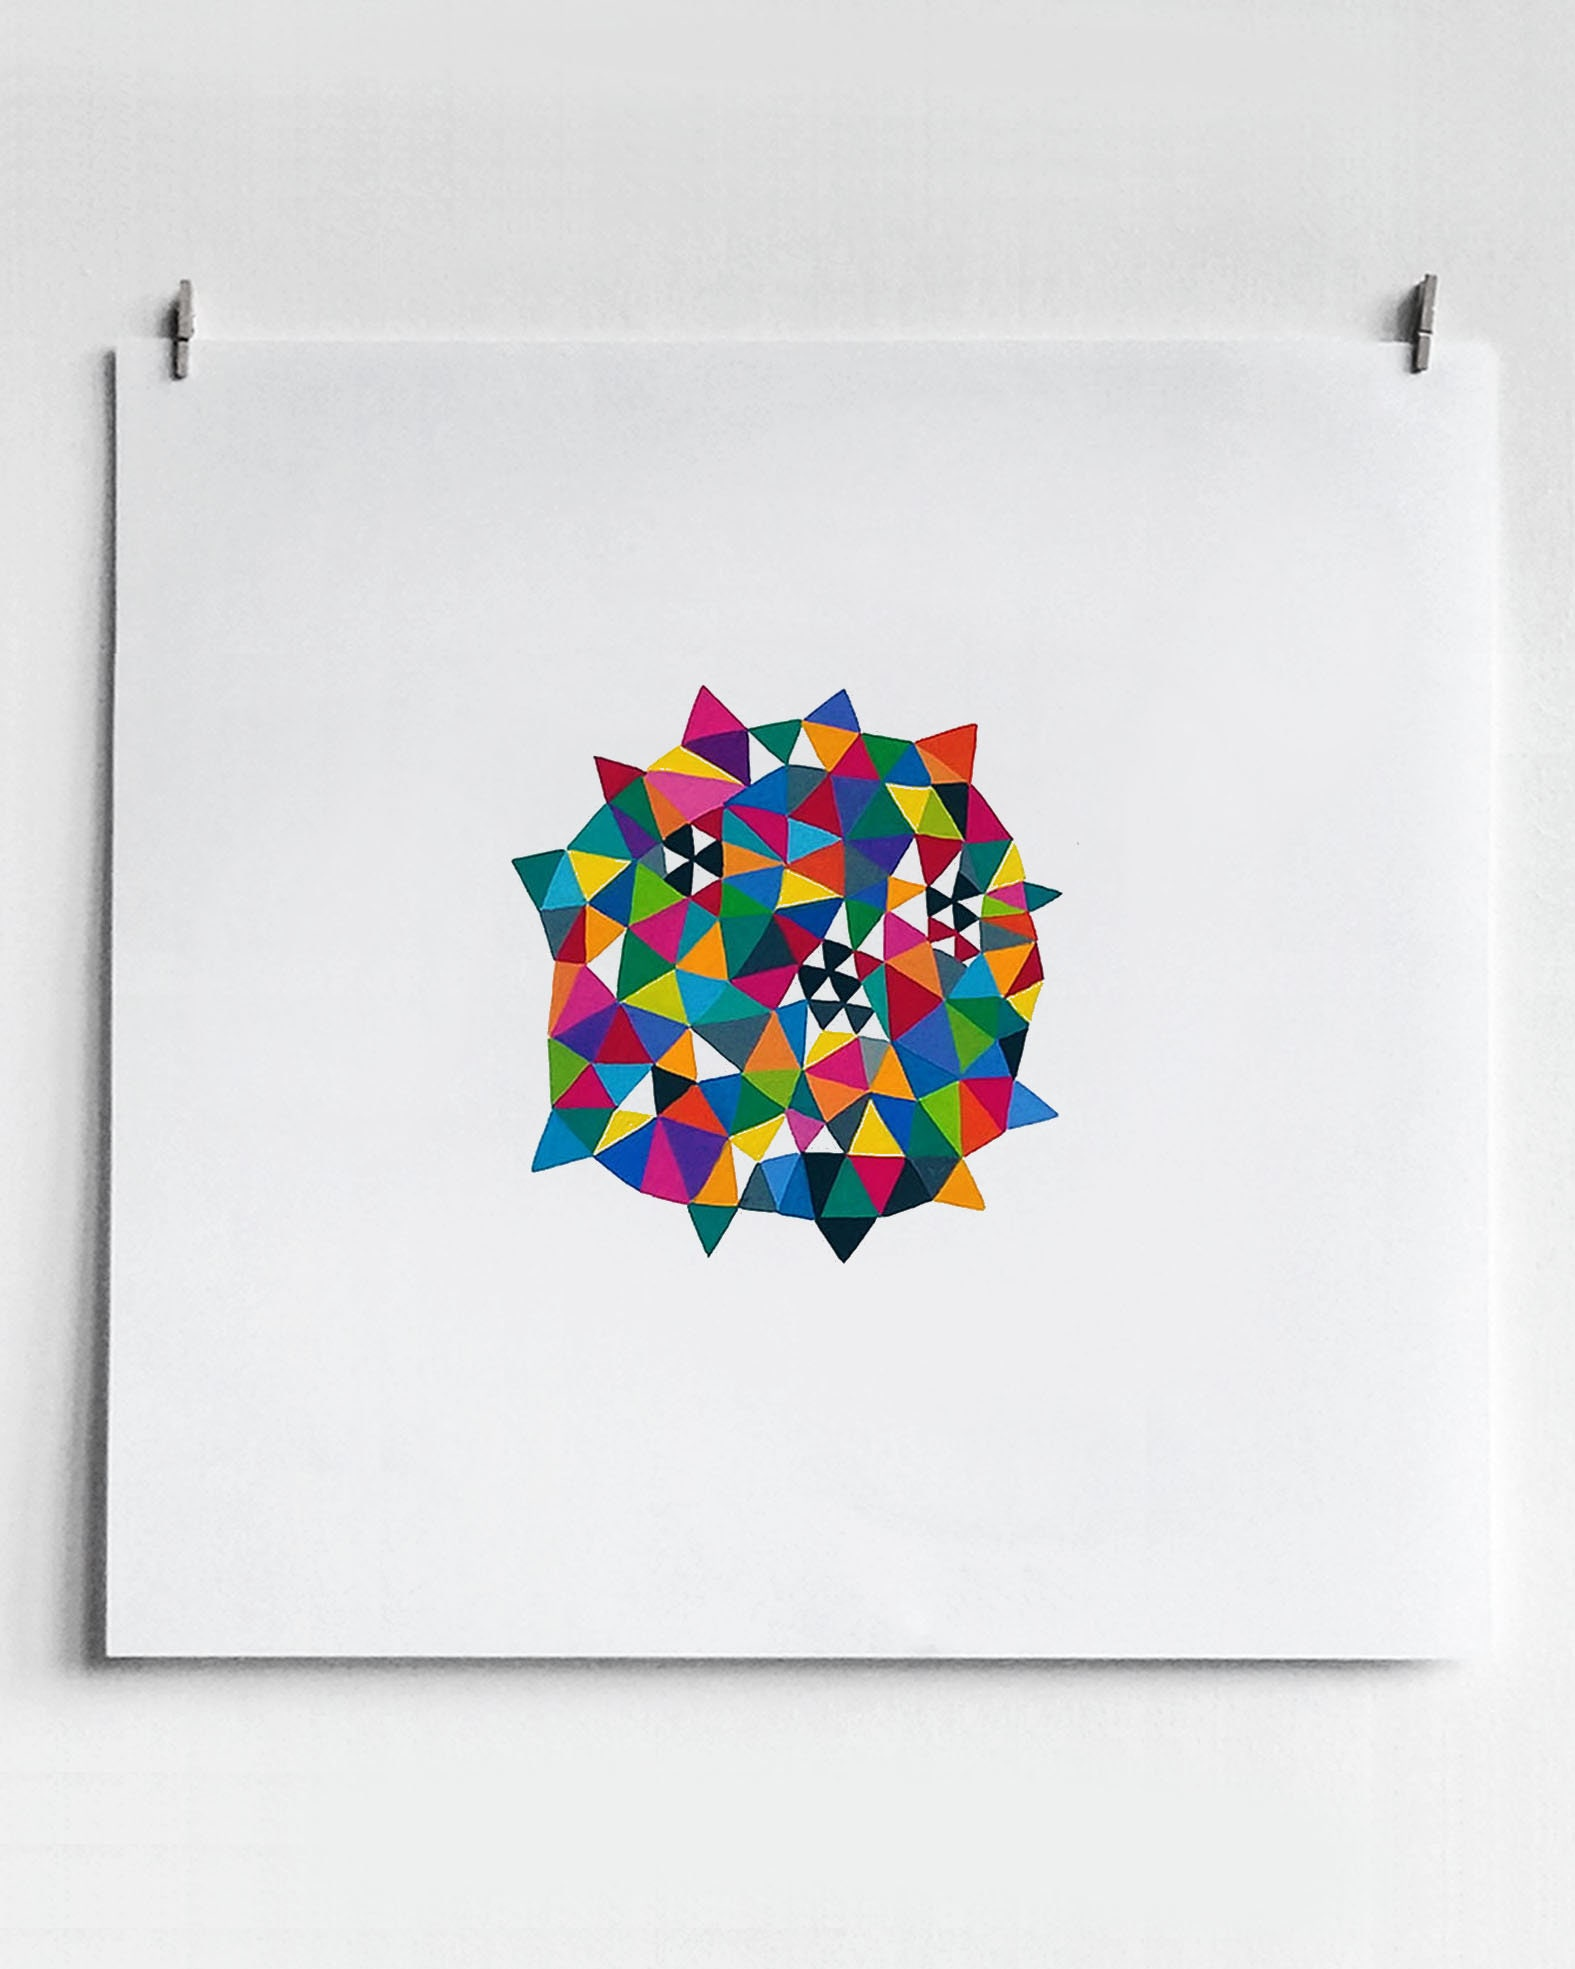 Germ_001, colourful geometric art on paper - product images  of